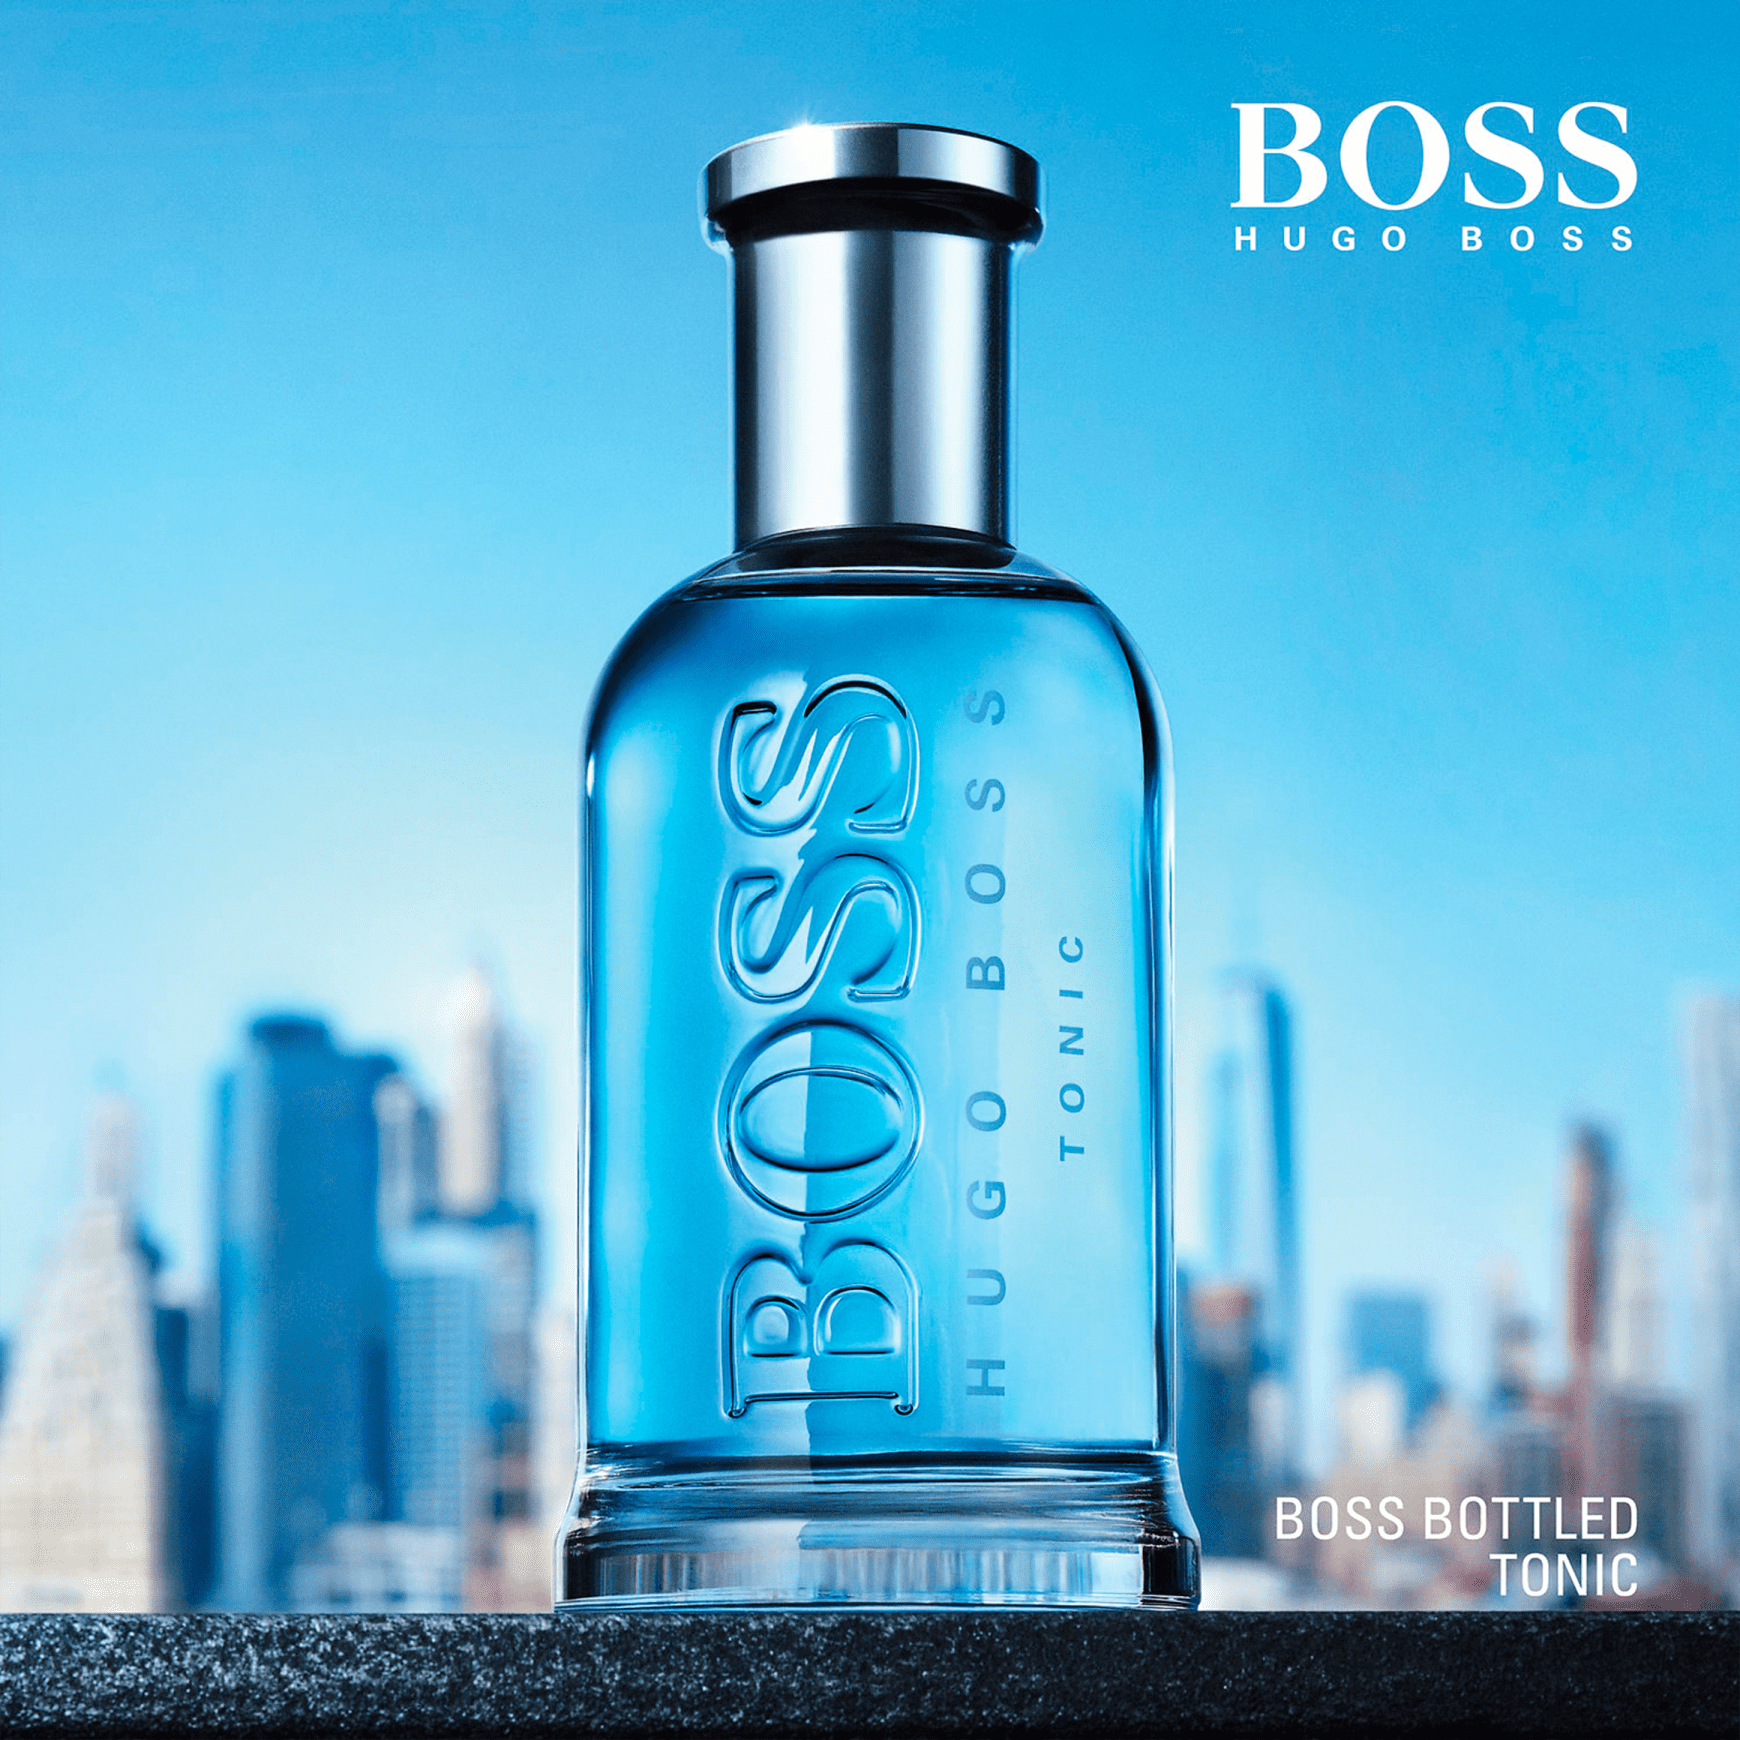 f8b68fb91207e Boss Bottled Tonic Hugo Boss Eau de Toilette - Perfume Masculino 50ml